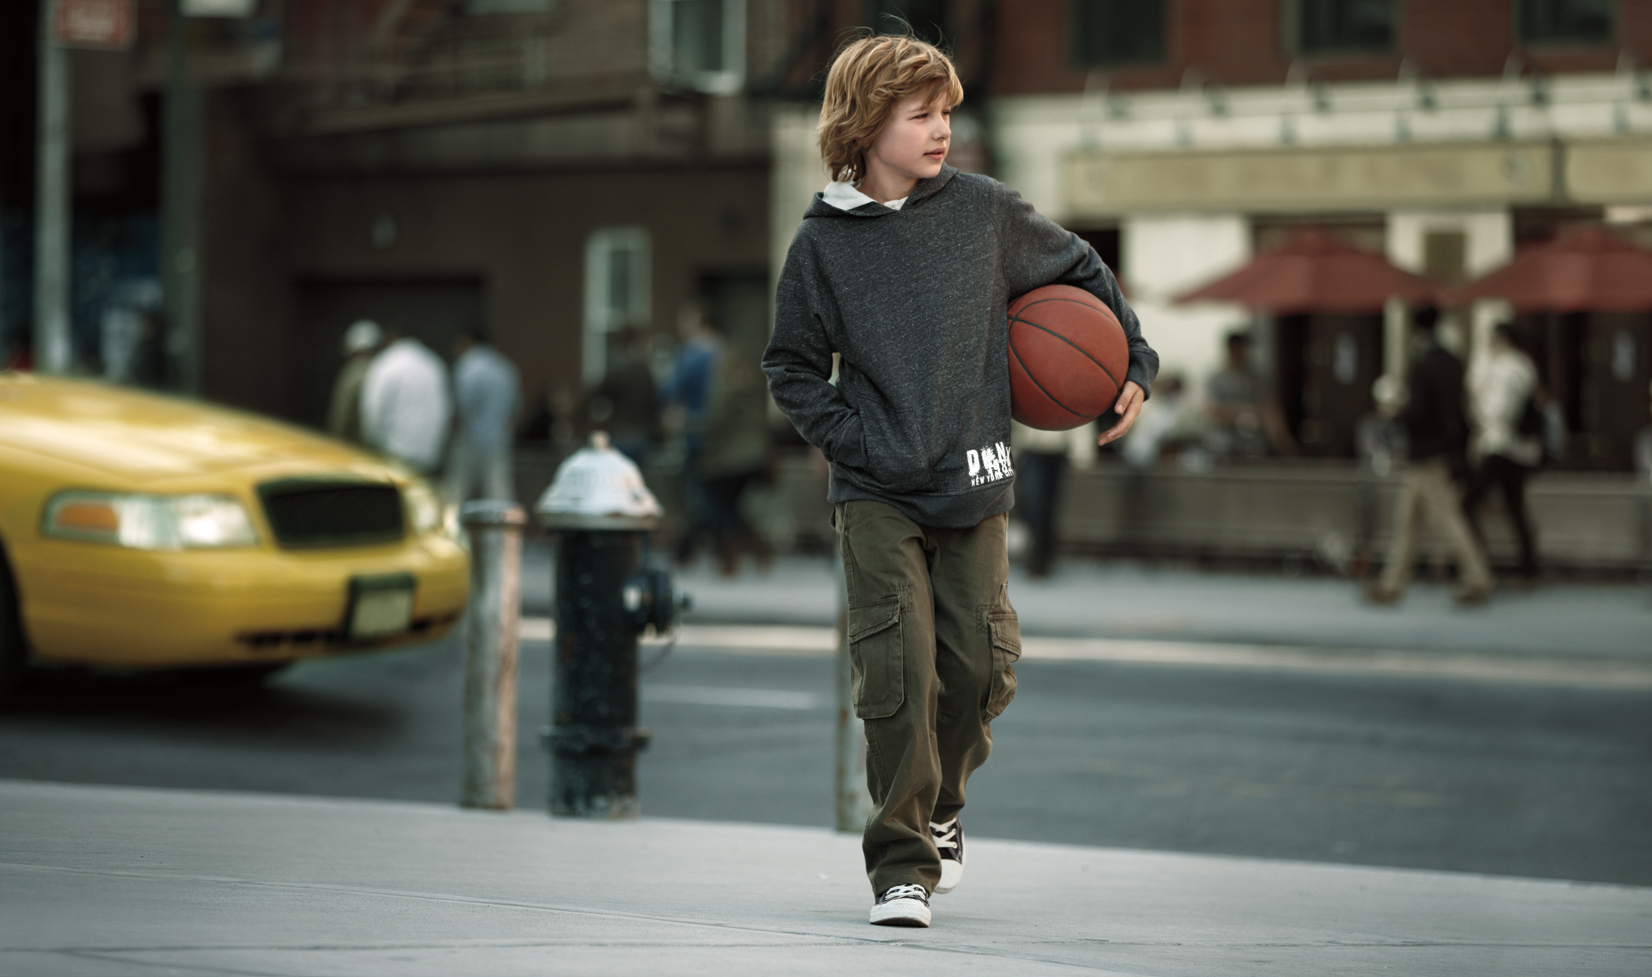 DKNYF12_DOM_Boy basketball-FPO.jpg